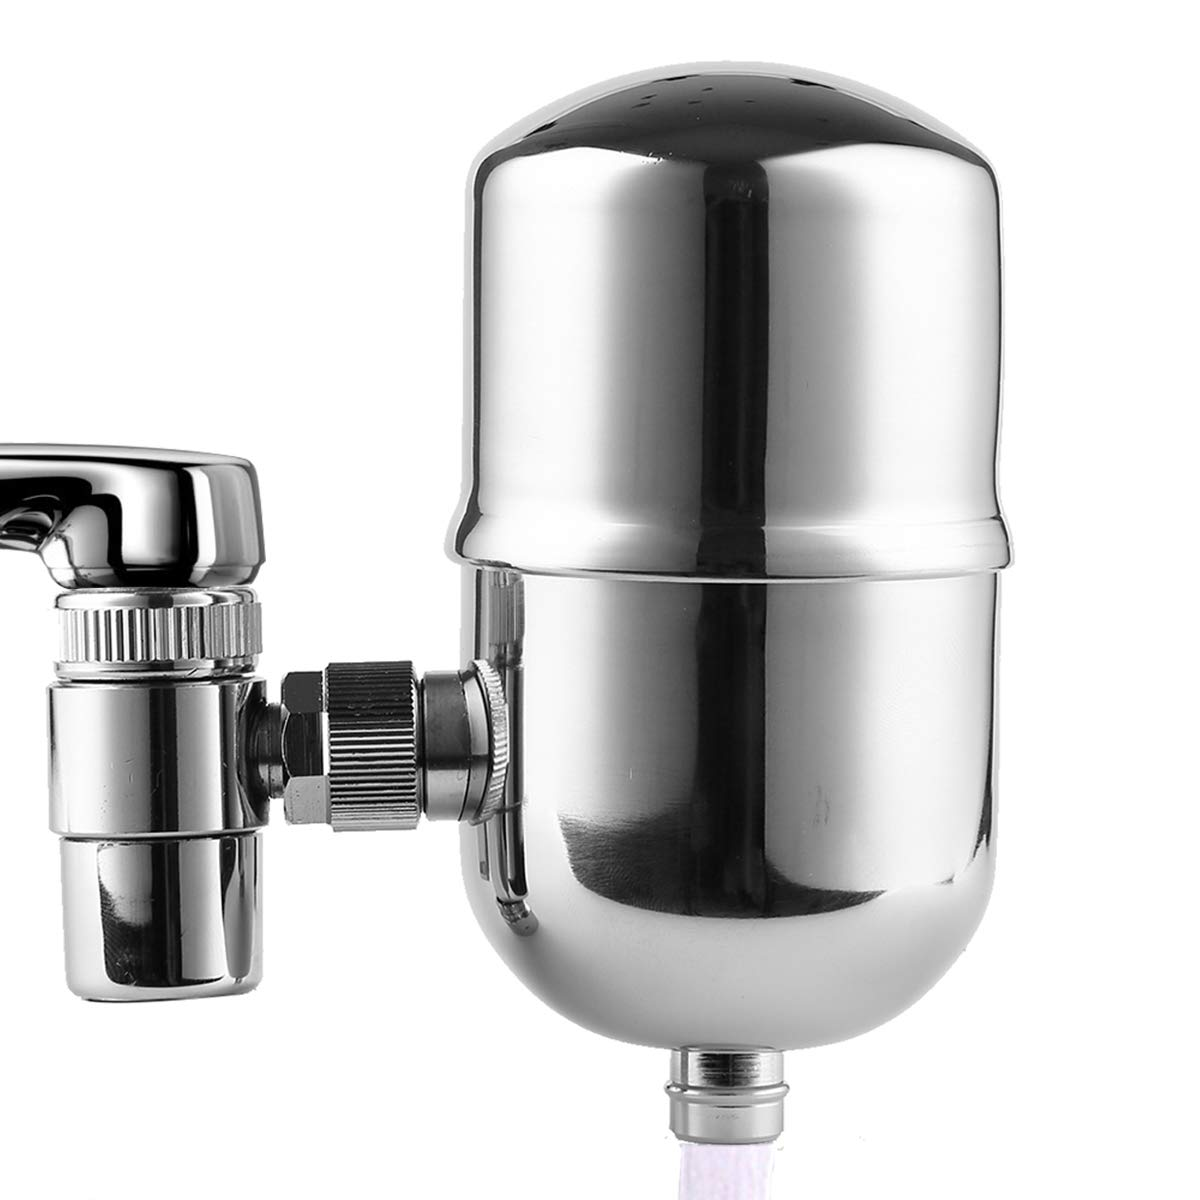 7. Engdenton Faucet Water Filter Stainless-Steel Reduce Chlorine High Water Flow, Water Purifier with Ultra Adsorptive Material